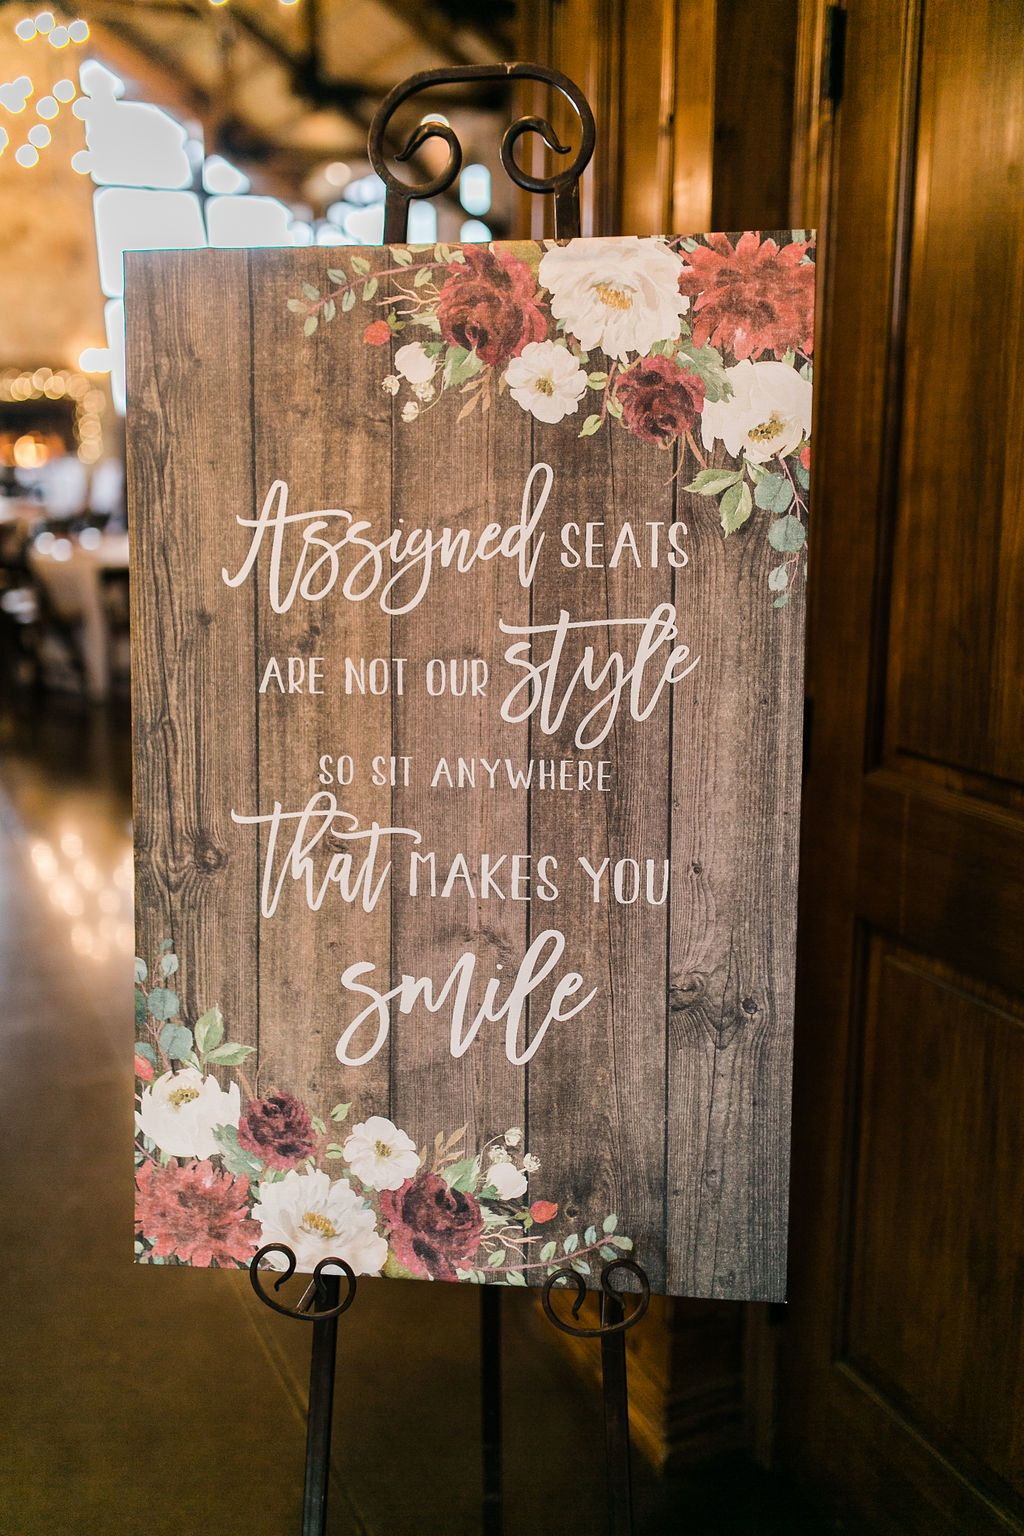 Bohemian Wedding Signs Modern Rustic Wedding Sign Assigned Seats Are Not Our Style So Rustic Wedding Signs Rustic Modern Wedding Wedding Reception Signs